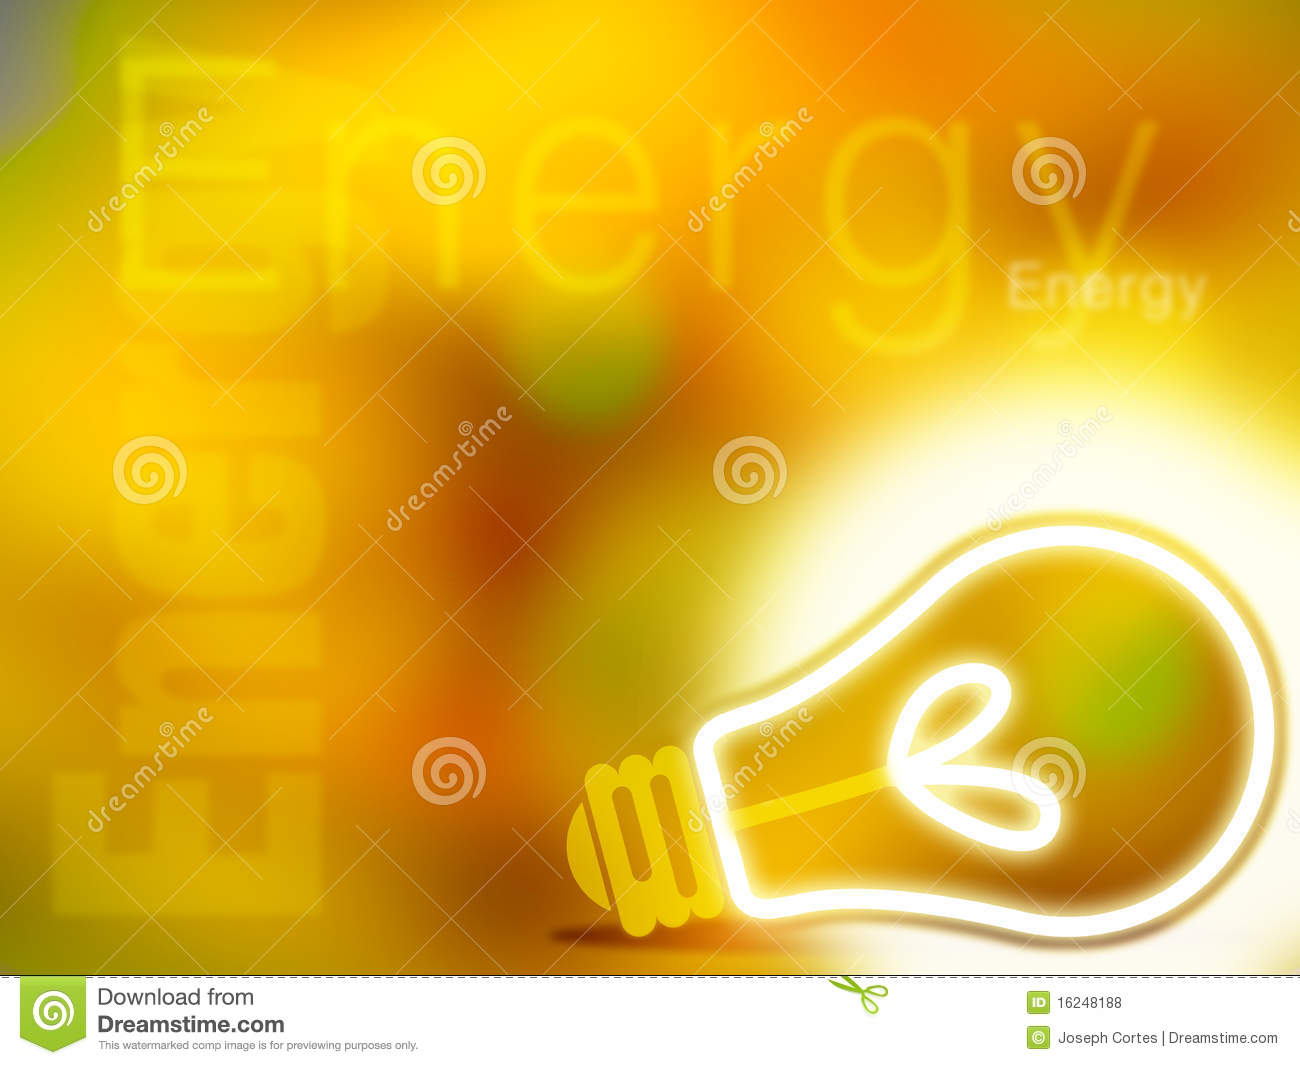 yellow electricity background - photo #27